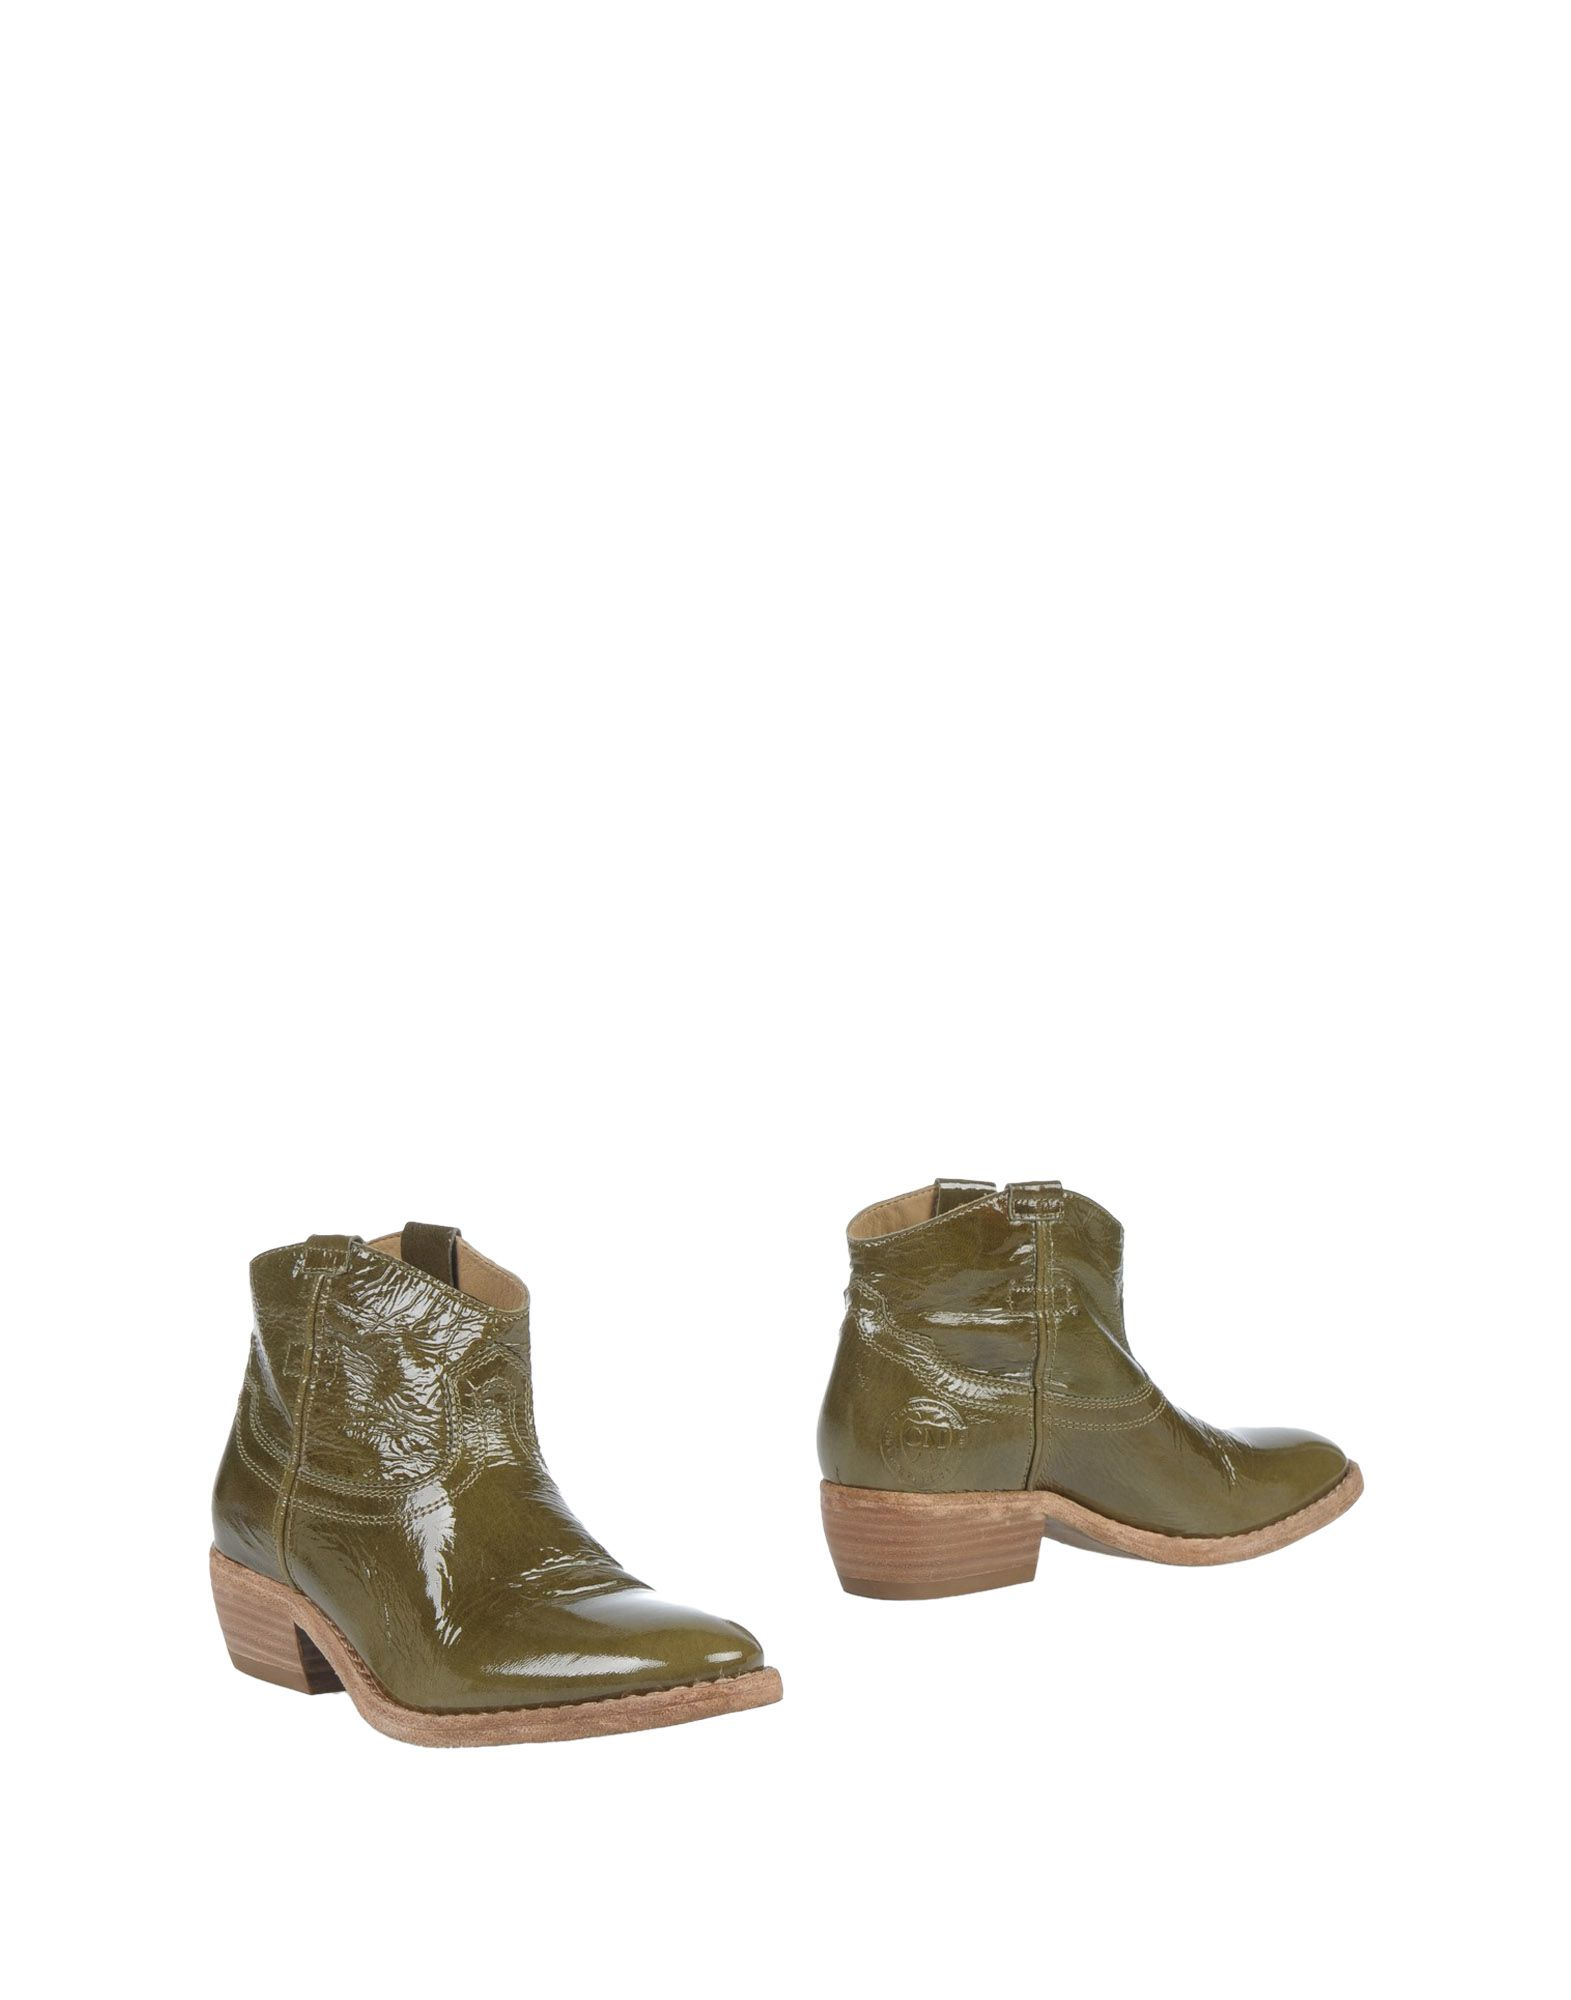 CATARINA MARTINS Ankle Boot in Military Green